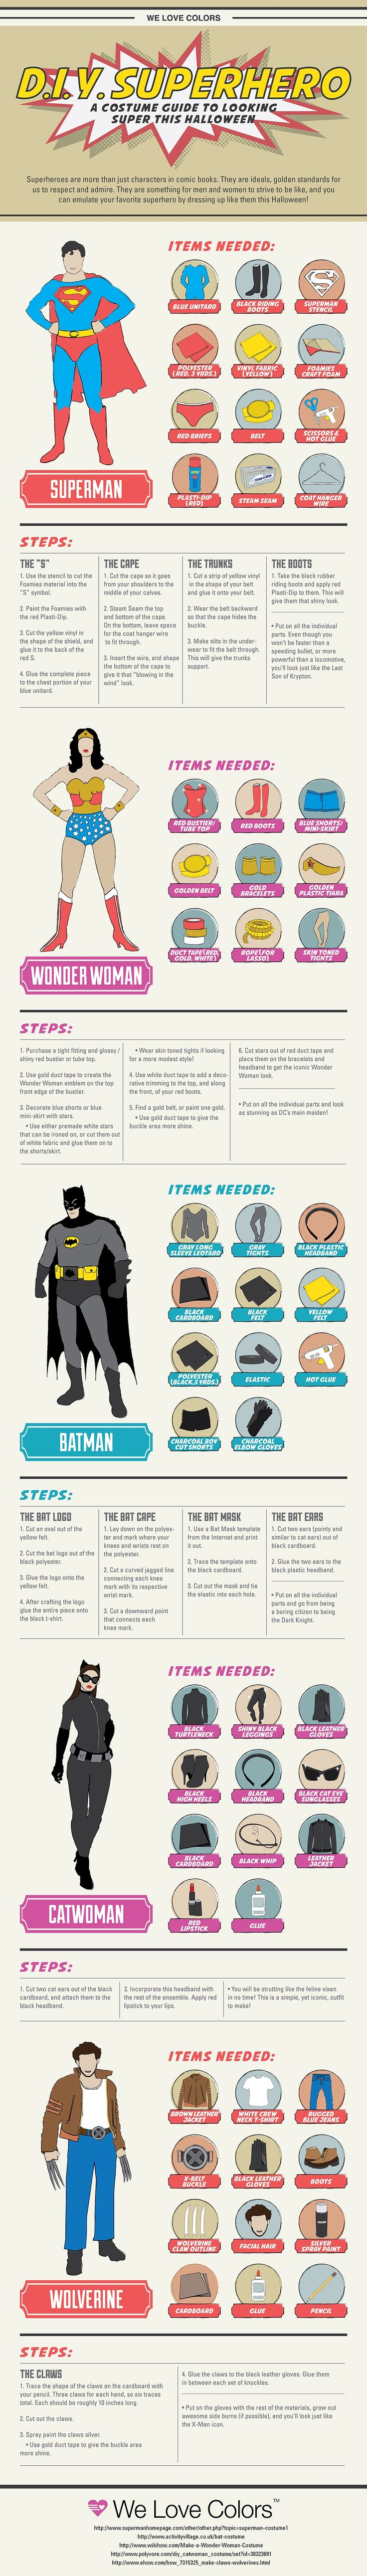 Prepare for Halloween With These DIY Superhero Costumes.  I really like the cat woman